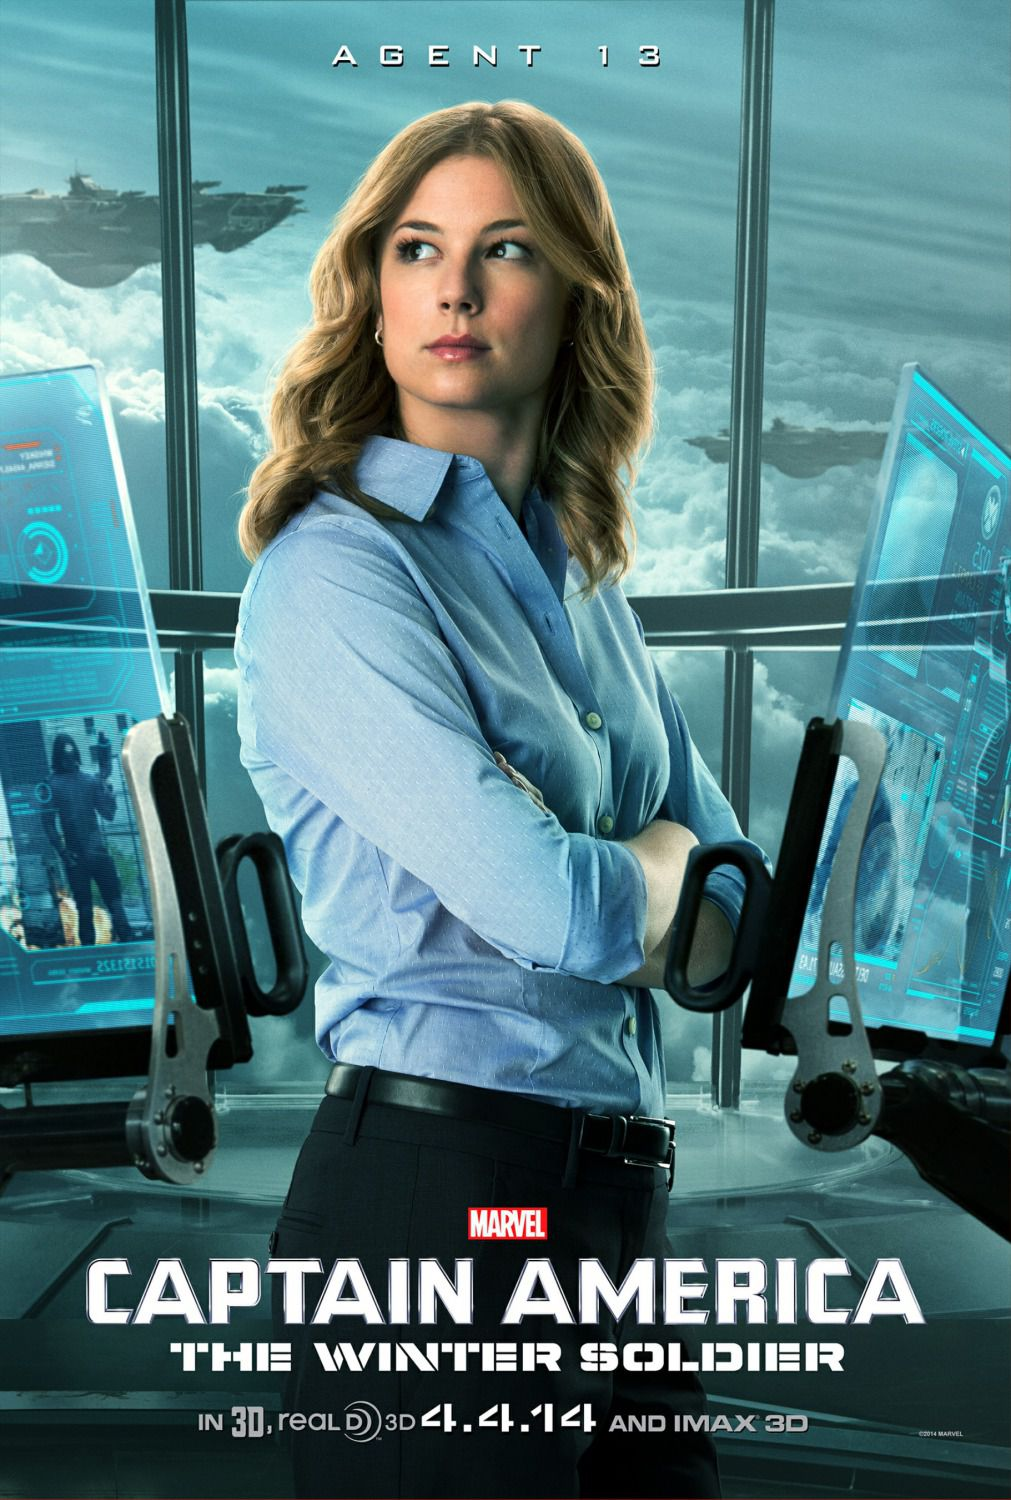 Film - Captain America 2 - the Winter Soldier - Capitan America - Agent 13 (Emily VanCamp)